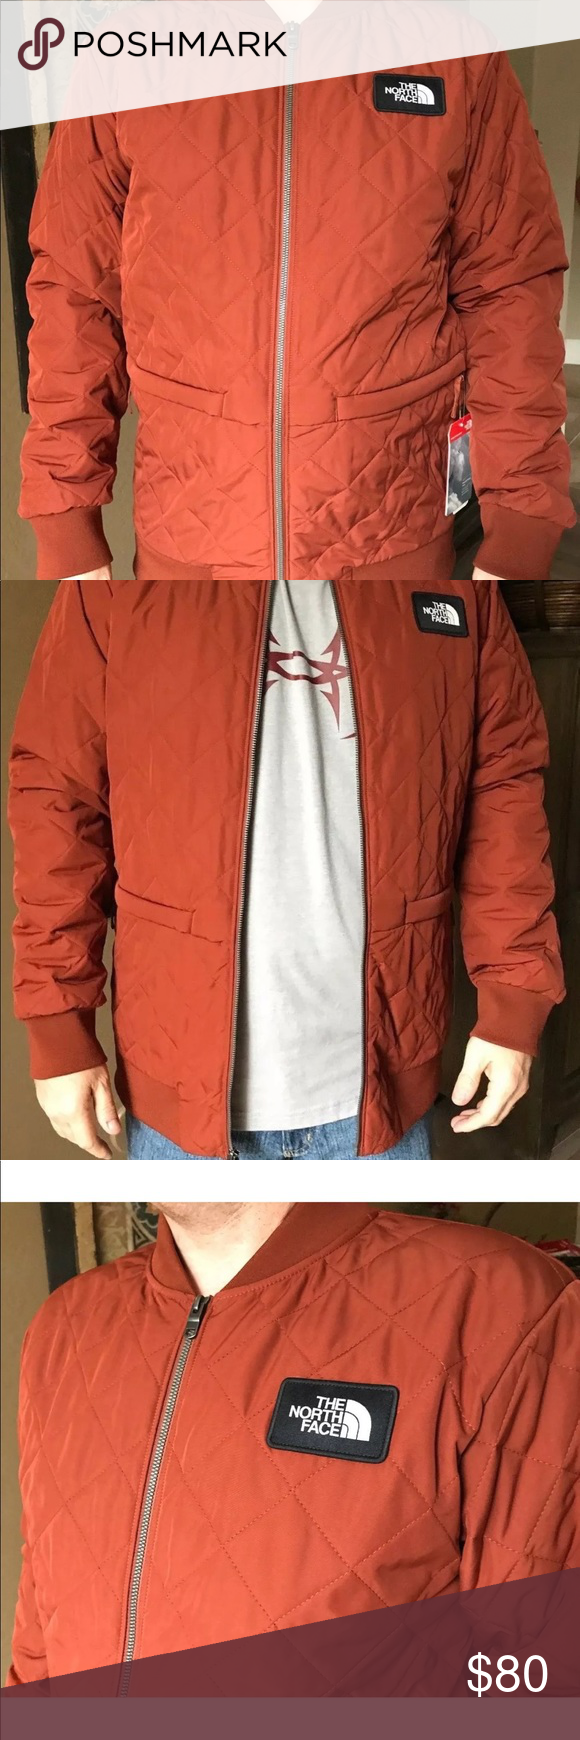 5ef0f605fd Men's The North Face Distributor Jacket NEW 2018 AUTHENTIC SALESMAN SAMPLE The  North Face Distributor Jacket Men's Size M COLOR: BRANDY BROWN RETAIL: ...